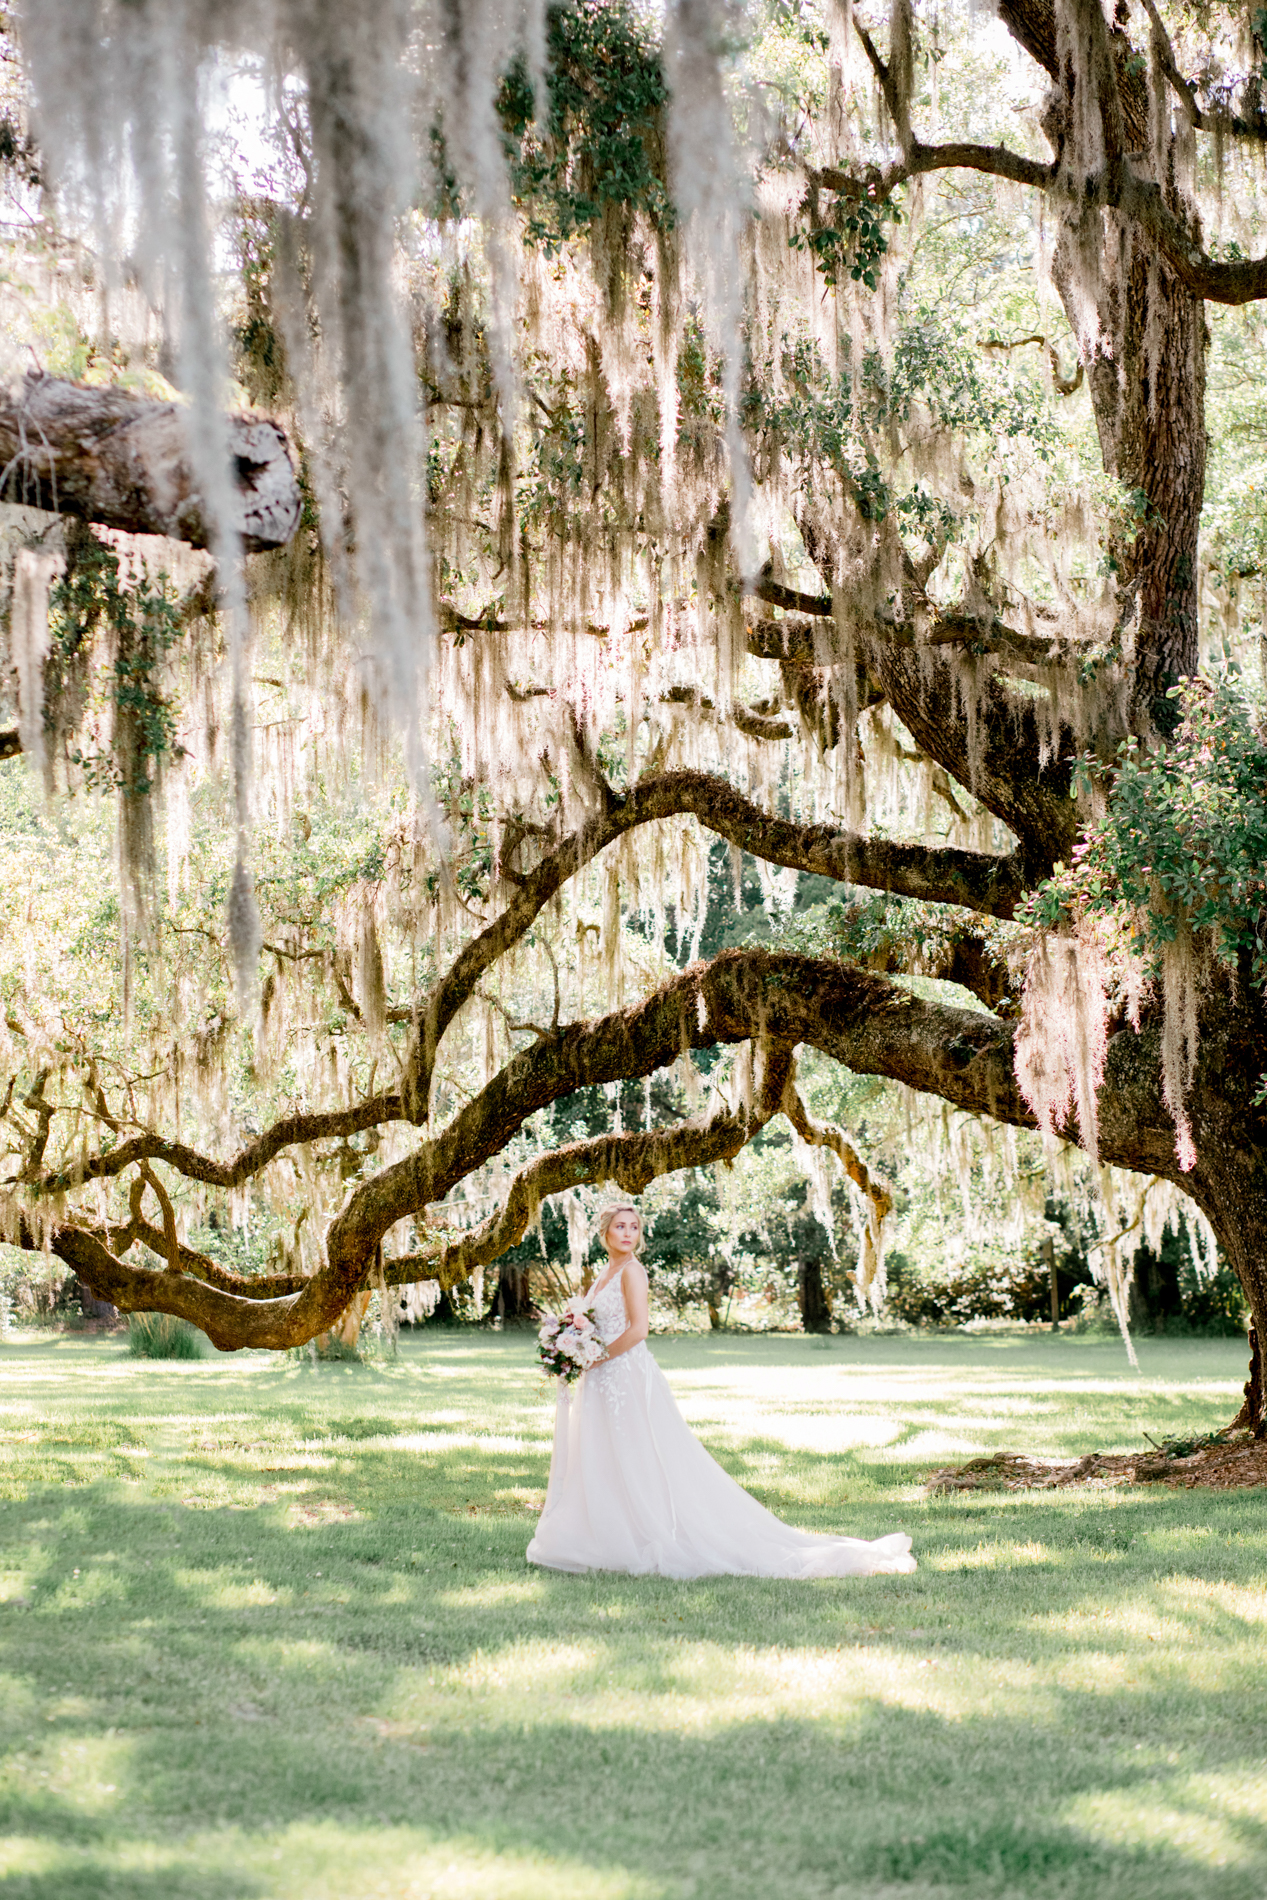 Charleston Flower Girl created the most stunning arrangements. The soft pretty colors where contrasted with deep shades of mauve. A hint of pale blue brought this story to life. The flowers complimented this gorgeous location in the best way possible!